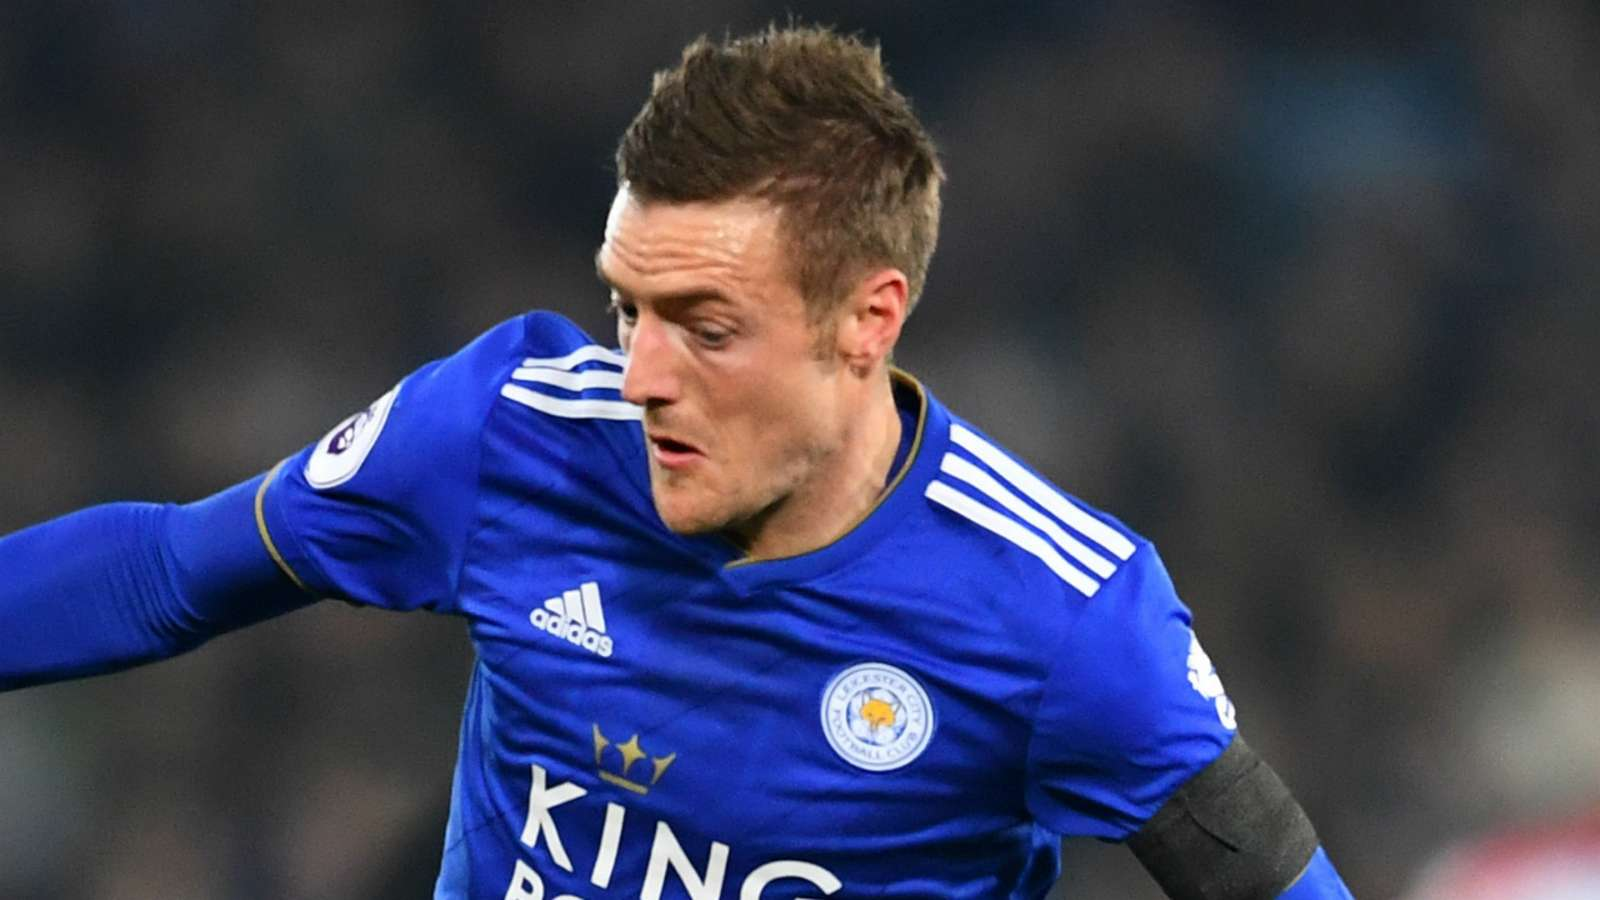 Vardy scored a brace in Leicester's 3-0 win over Arsenal. (Agency Photo)